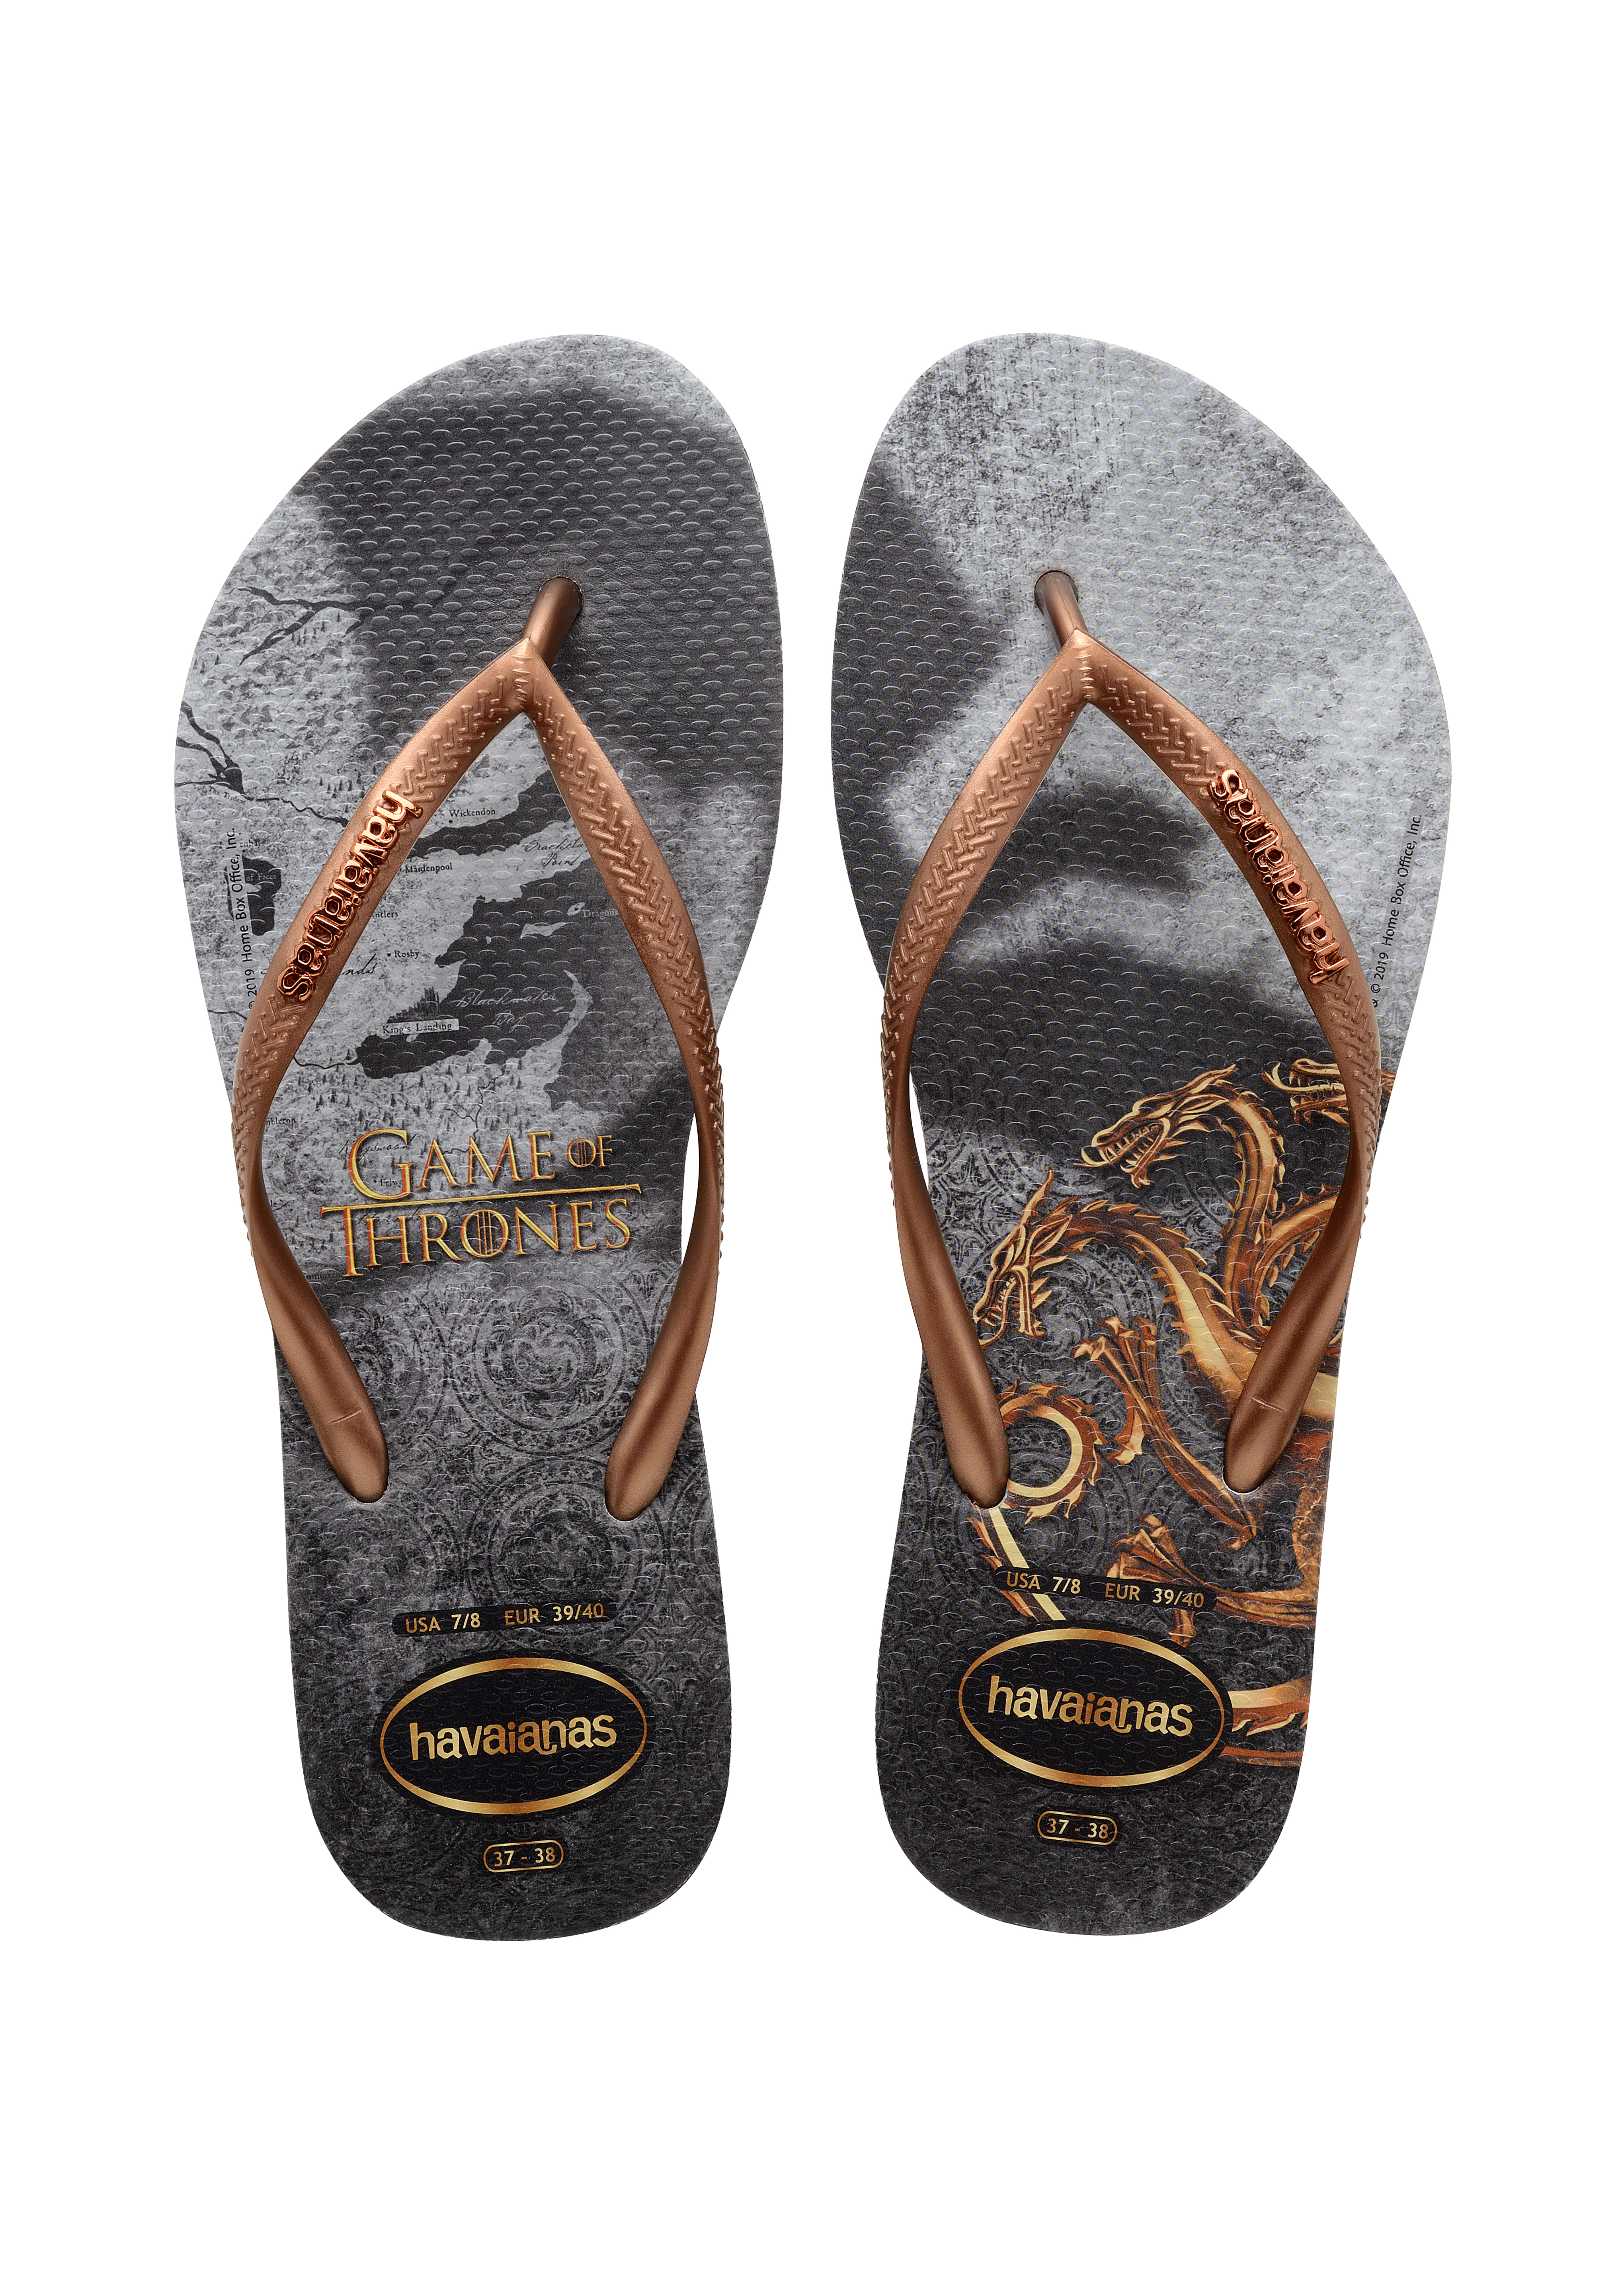 Chinelo da Havaianas inspirado em Game Of Thrones